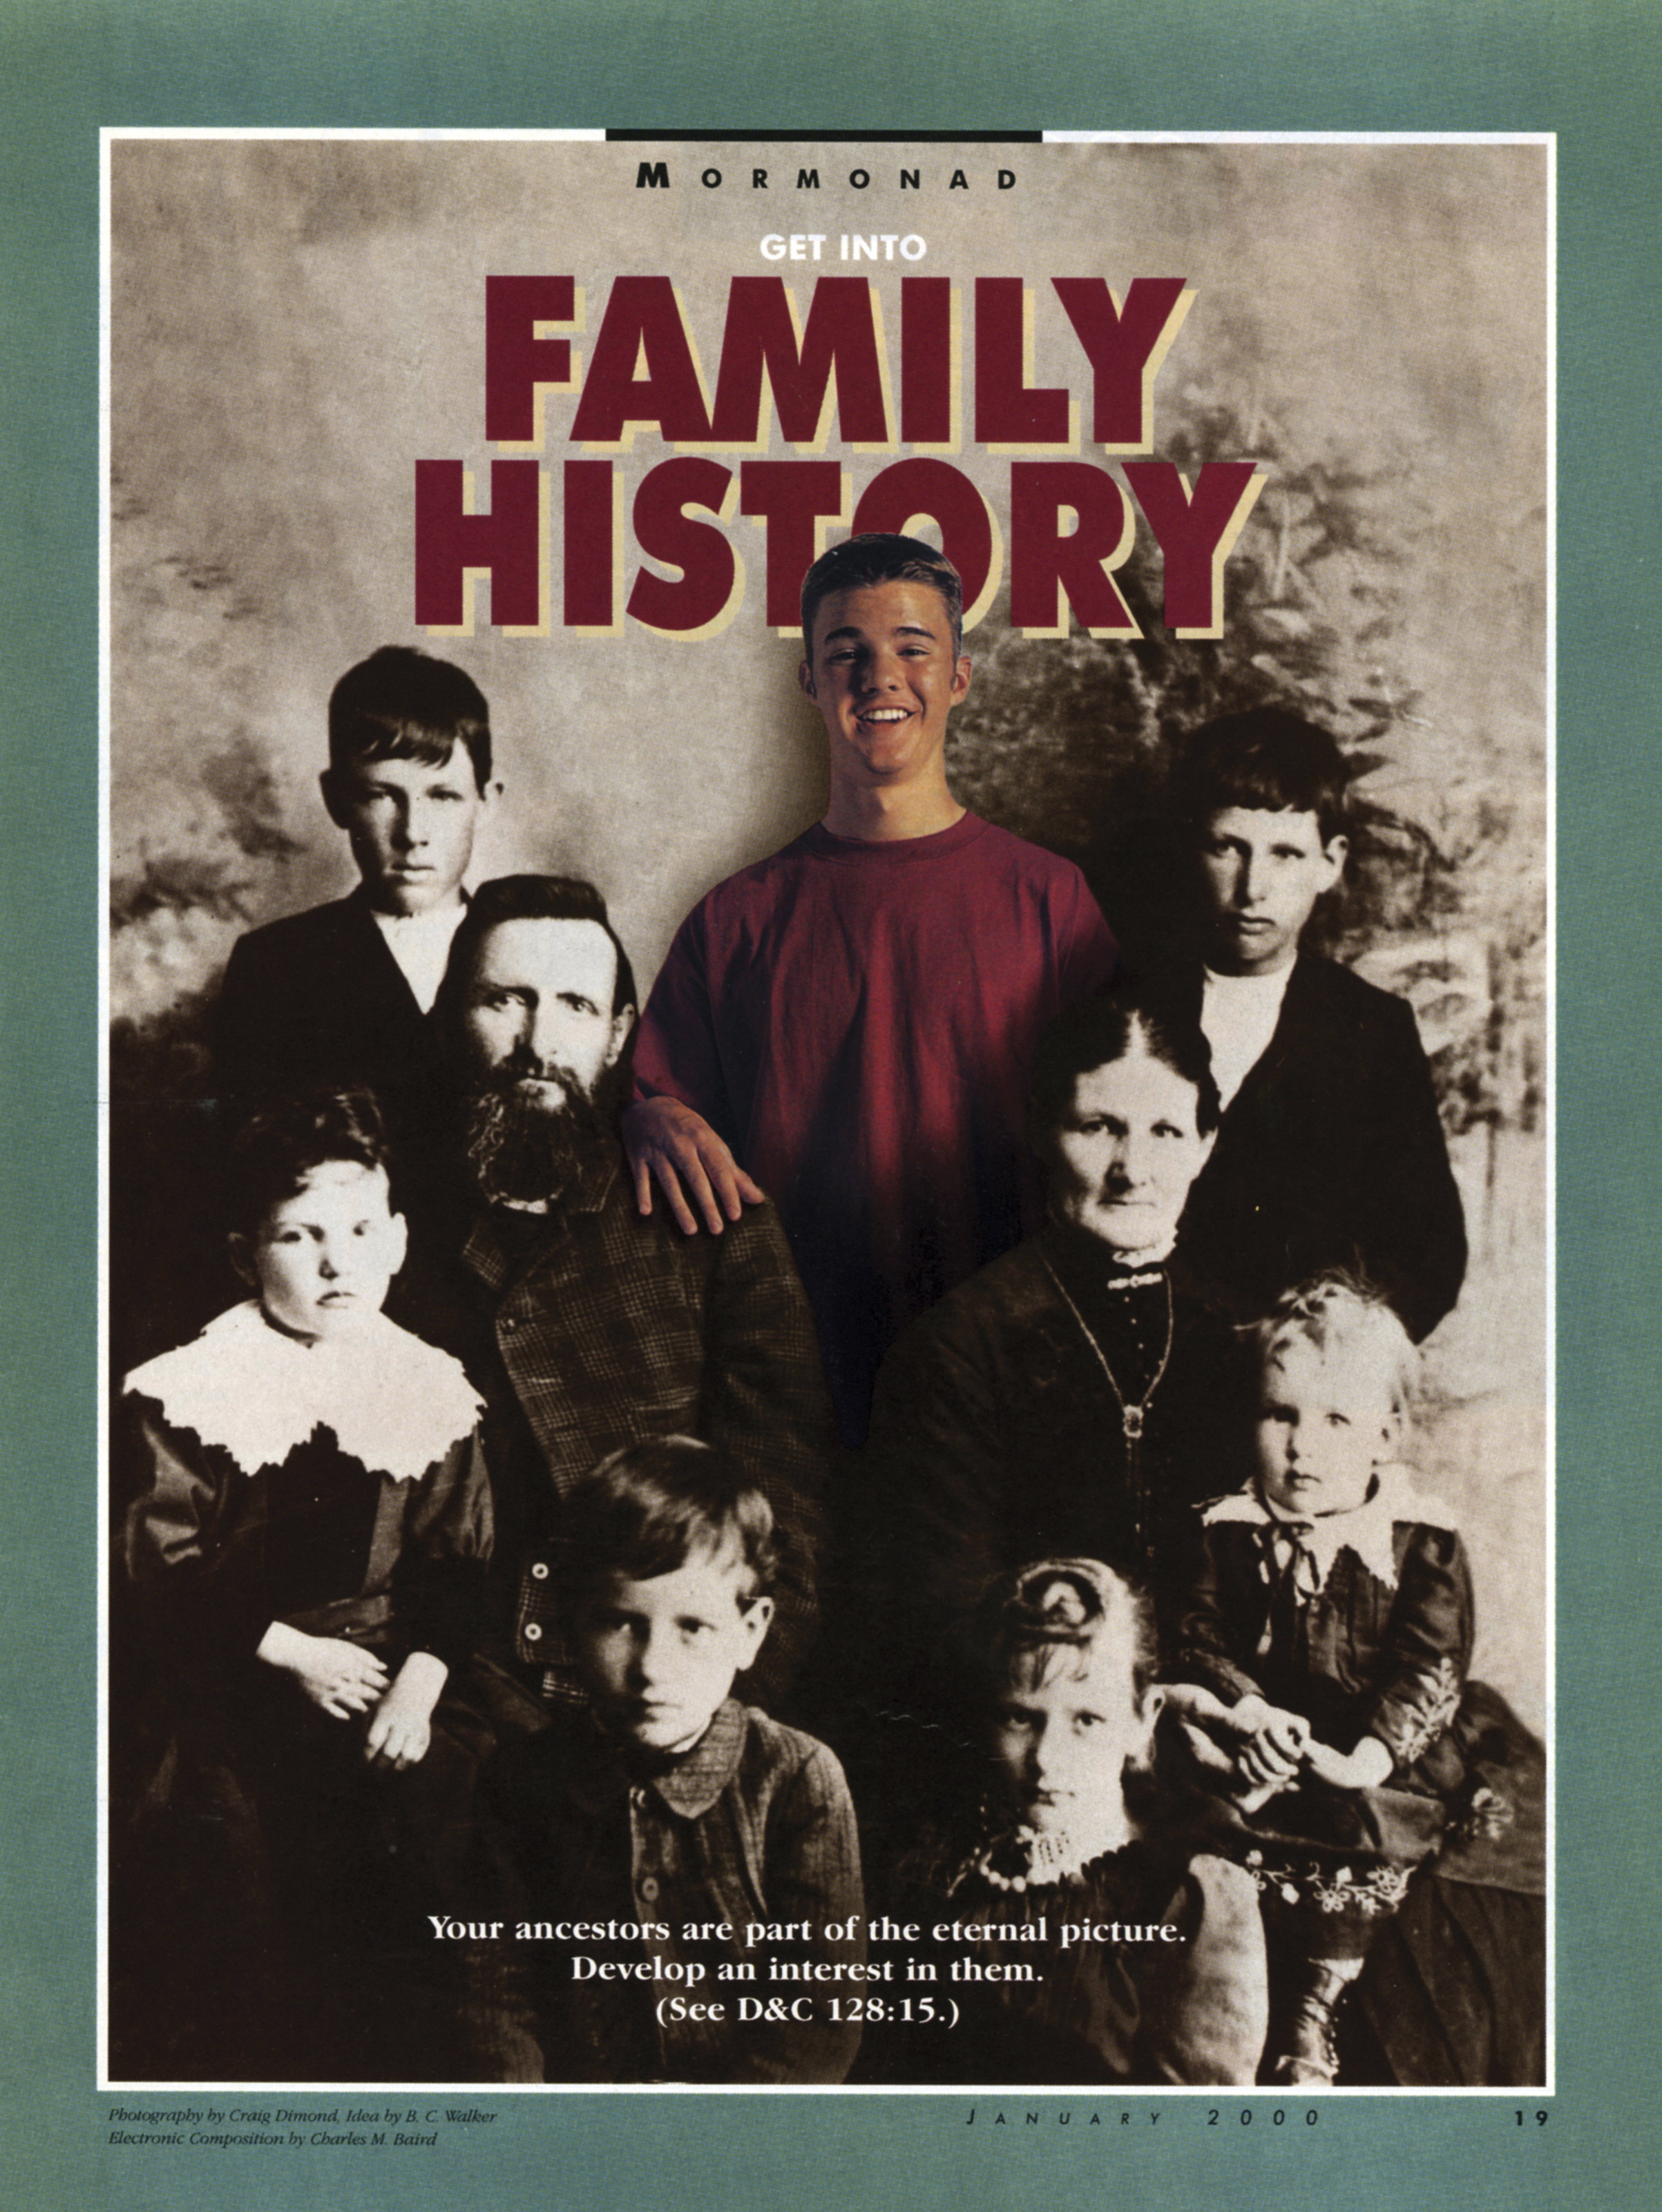 Get into Family History. Your ancestors are part of the eternal picture. Develop an interest in them. (See D&C 128:15.) Jan. 2000 © undefined ipCode 1.